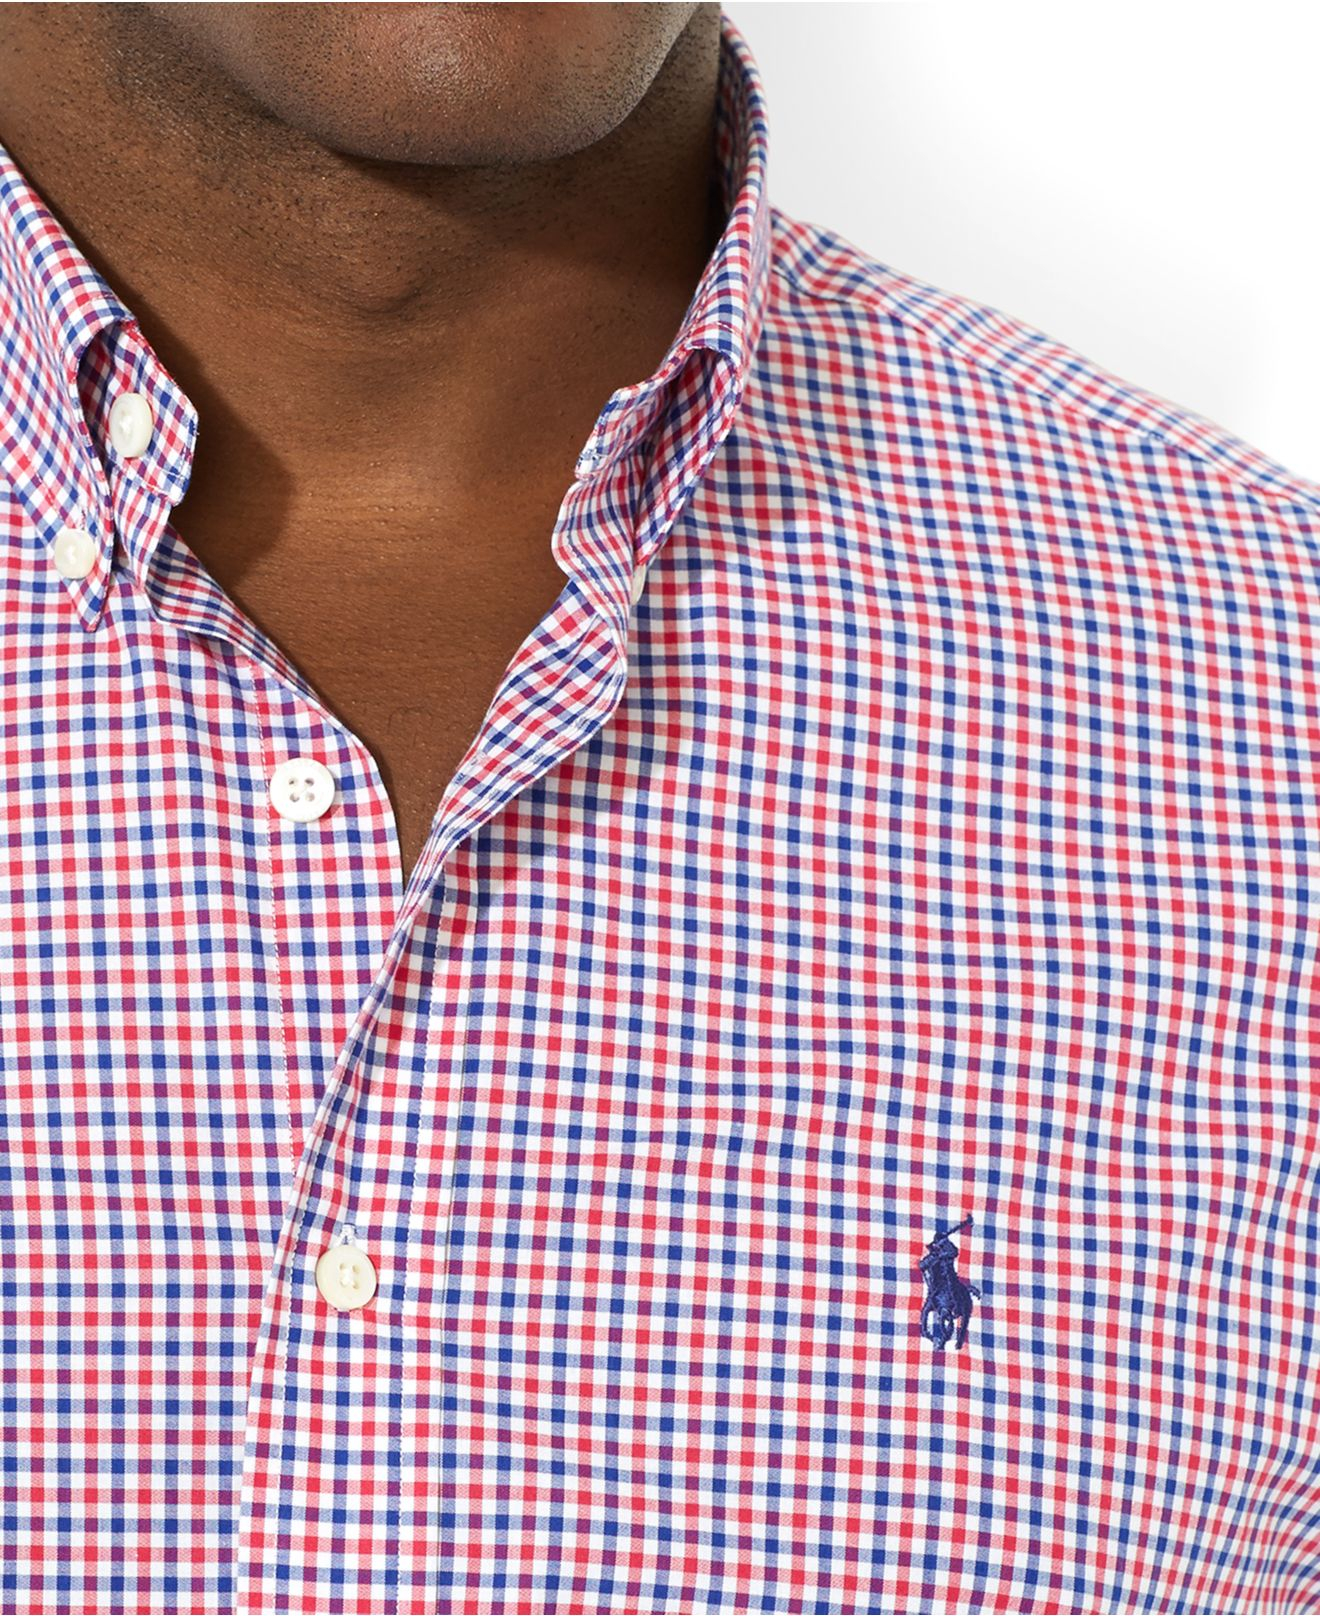 2fcf3d275 Polo Ralph Lauren Shirt In Slim Fit Red Gingham Short Sleeves in ...